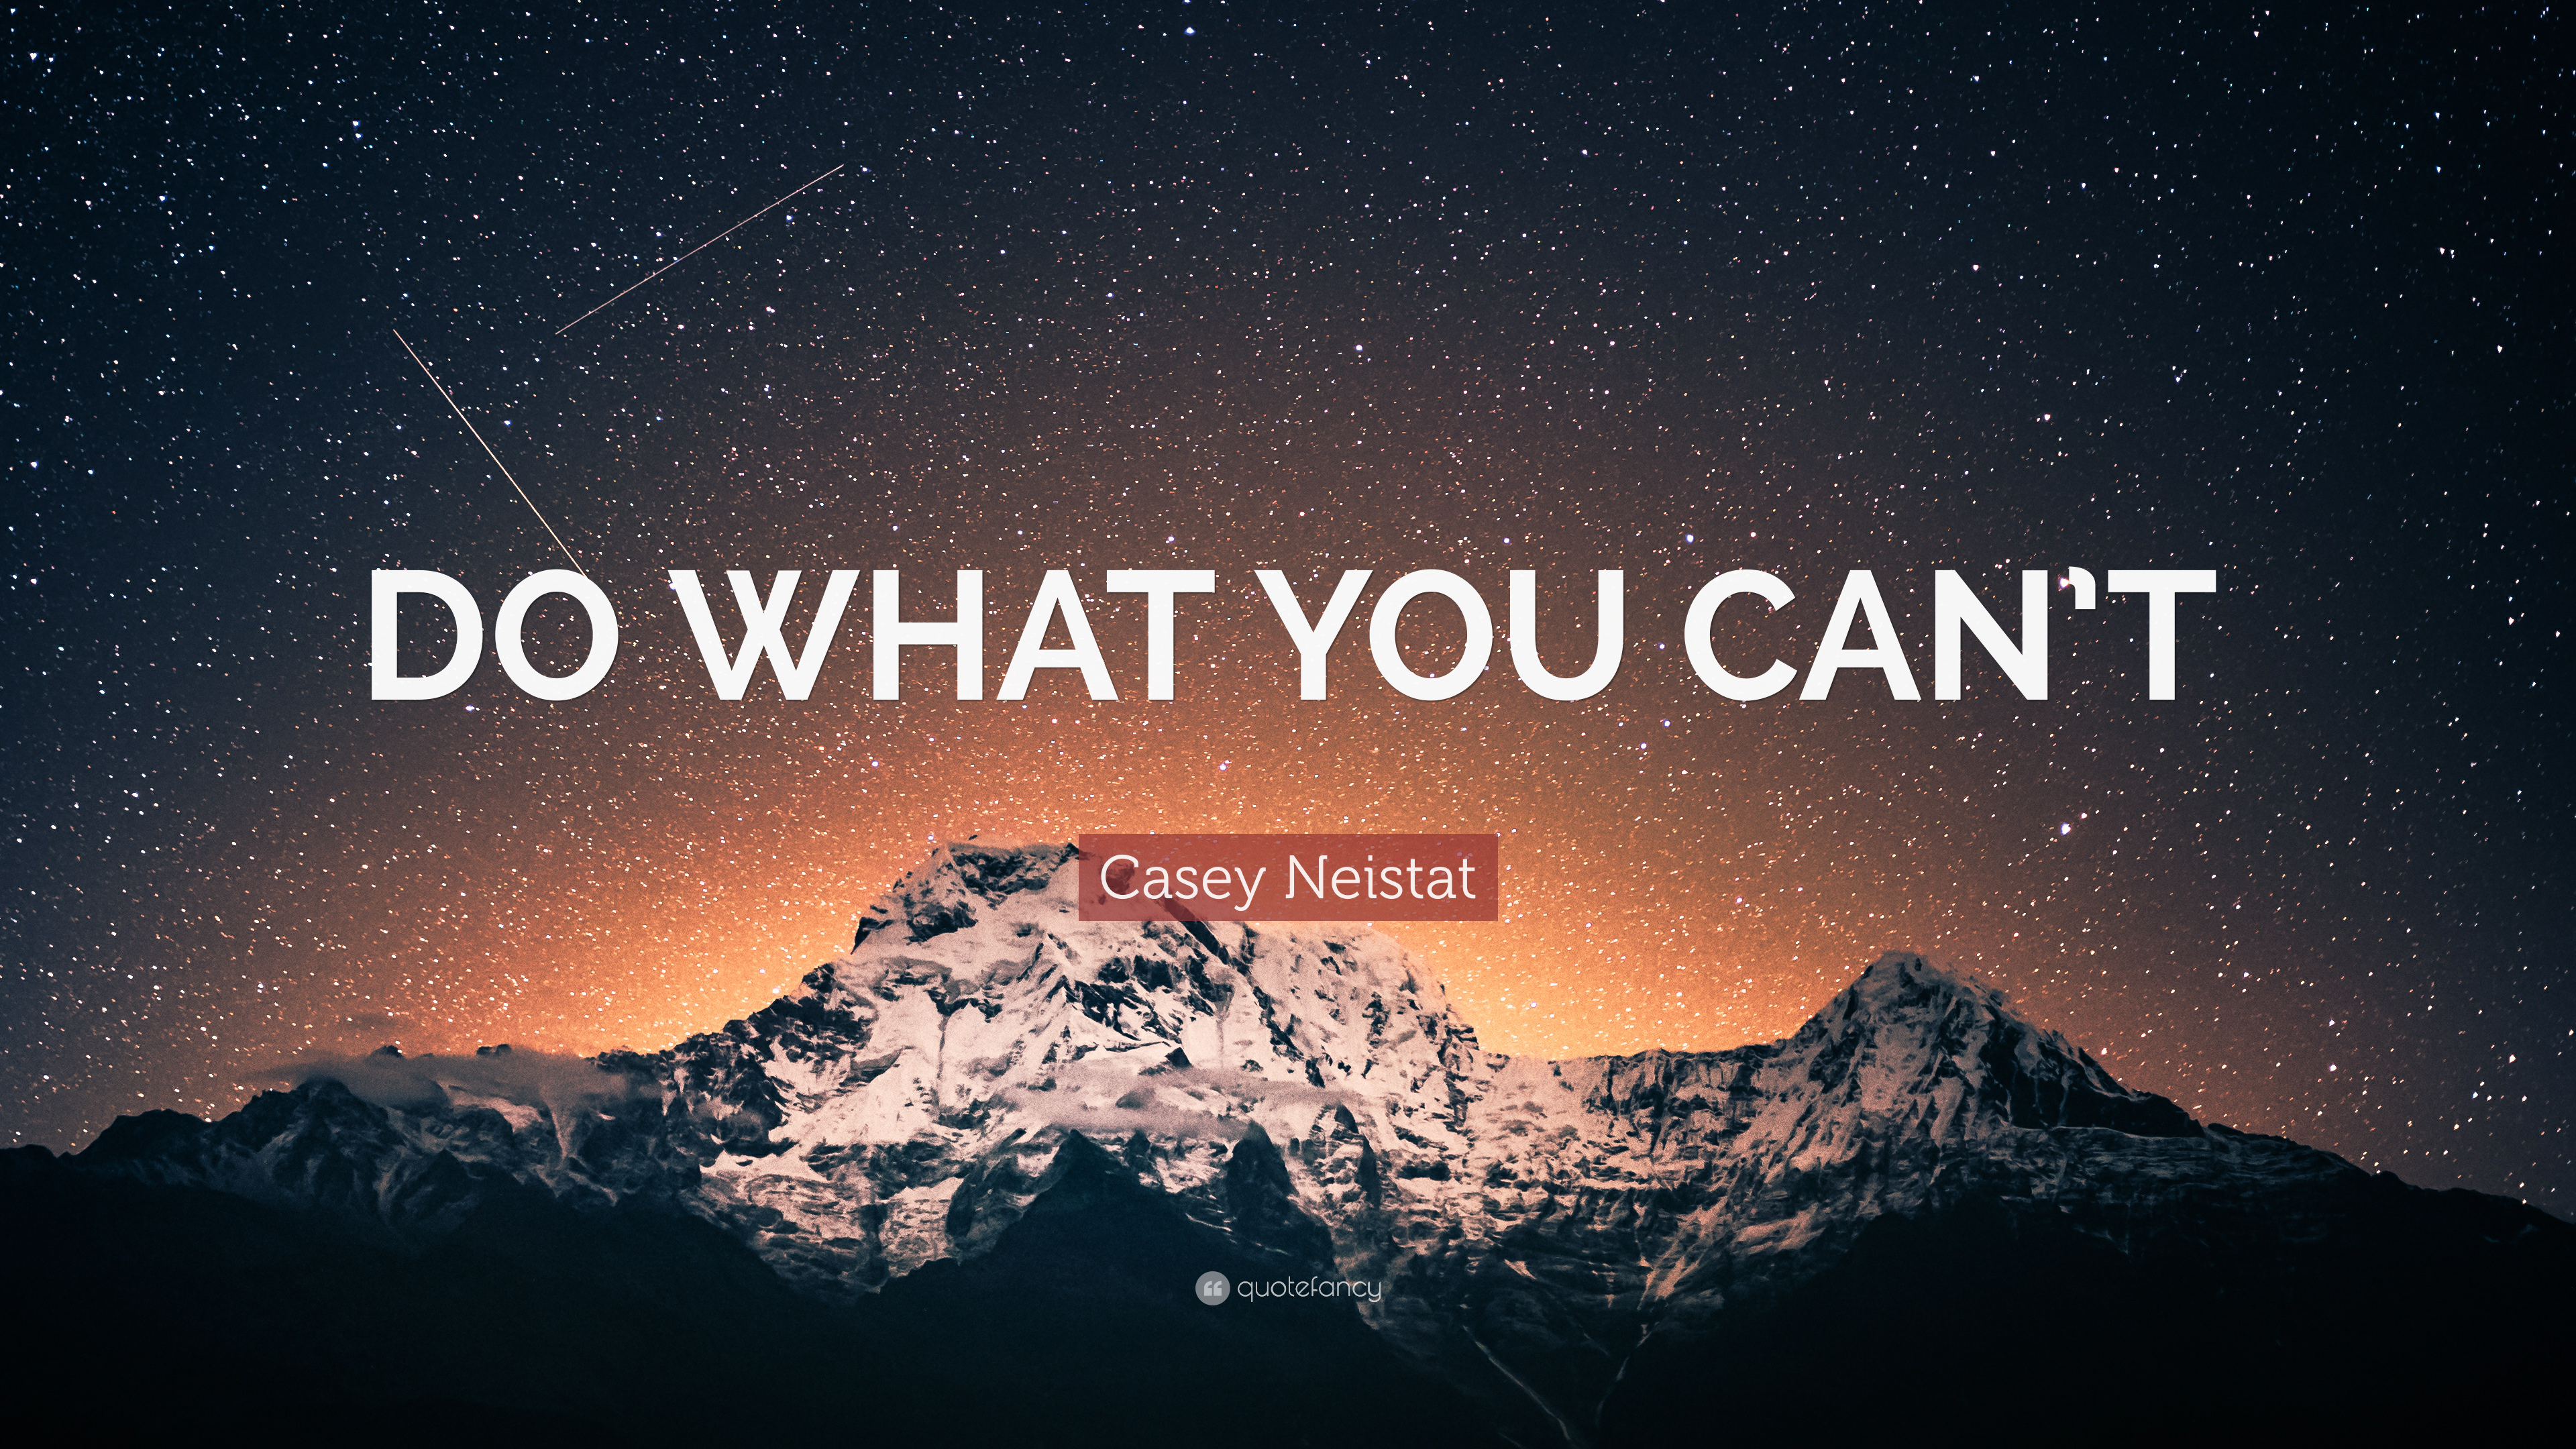 Casey Neistat Quote - If You Meditate And The Devil Comes Make The Devil - HD Wallpaper